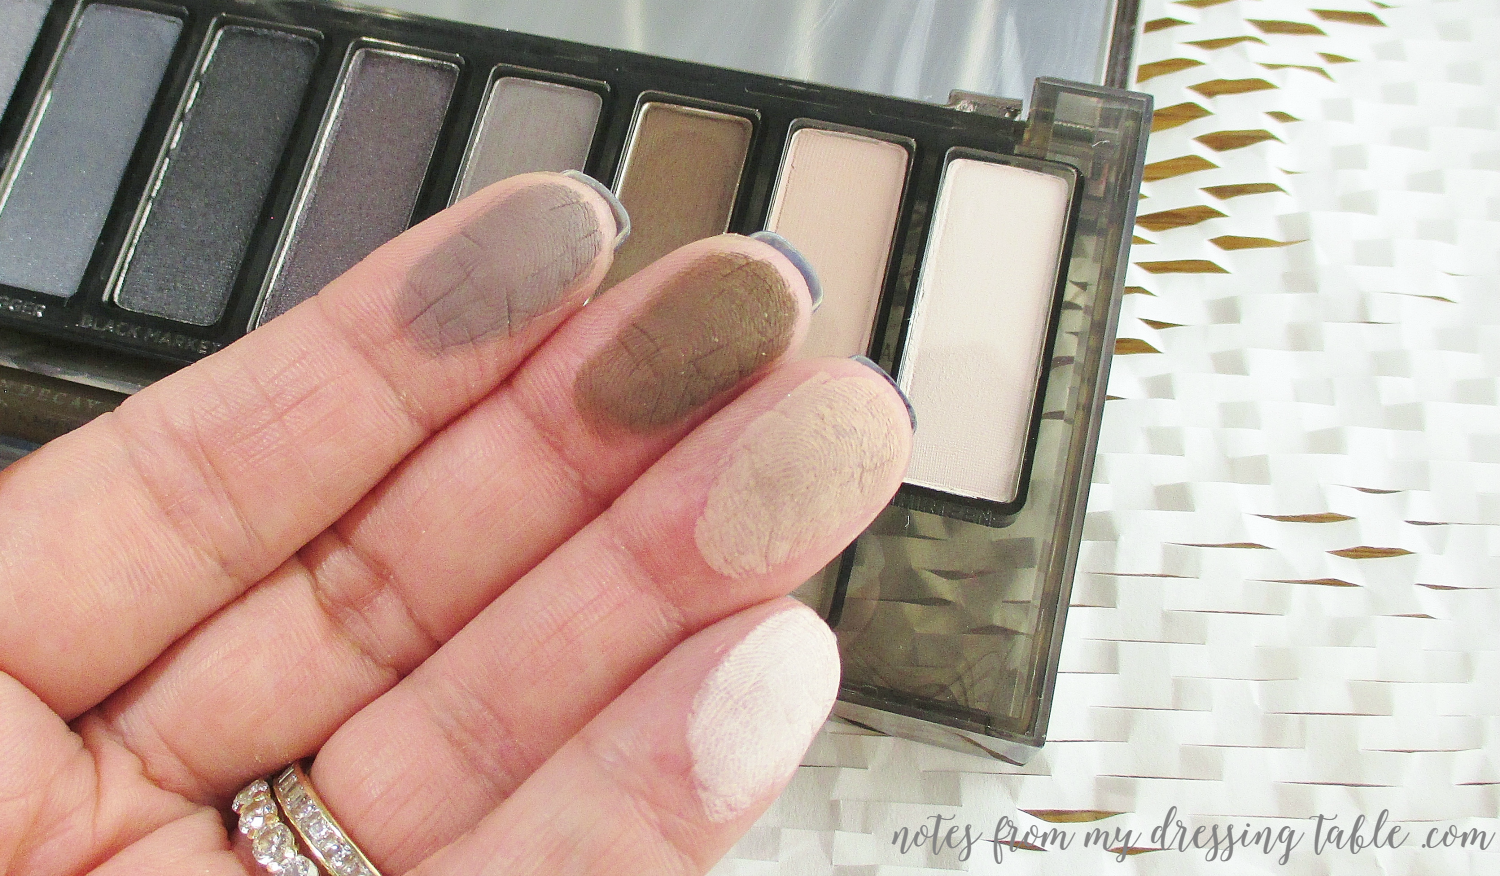 Urban Decay NAKED Smokey Palette Matte Swatches Finger Swatches notesfrommydressingtable.com